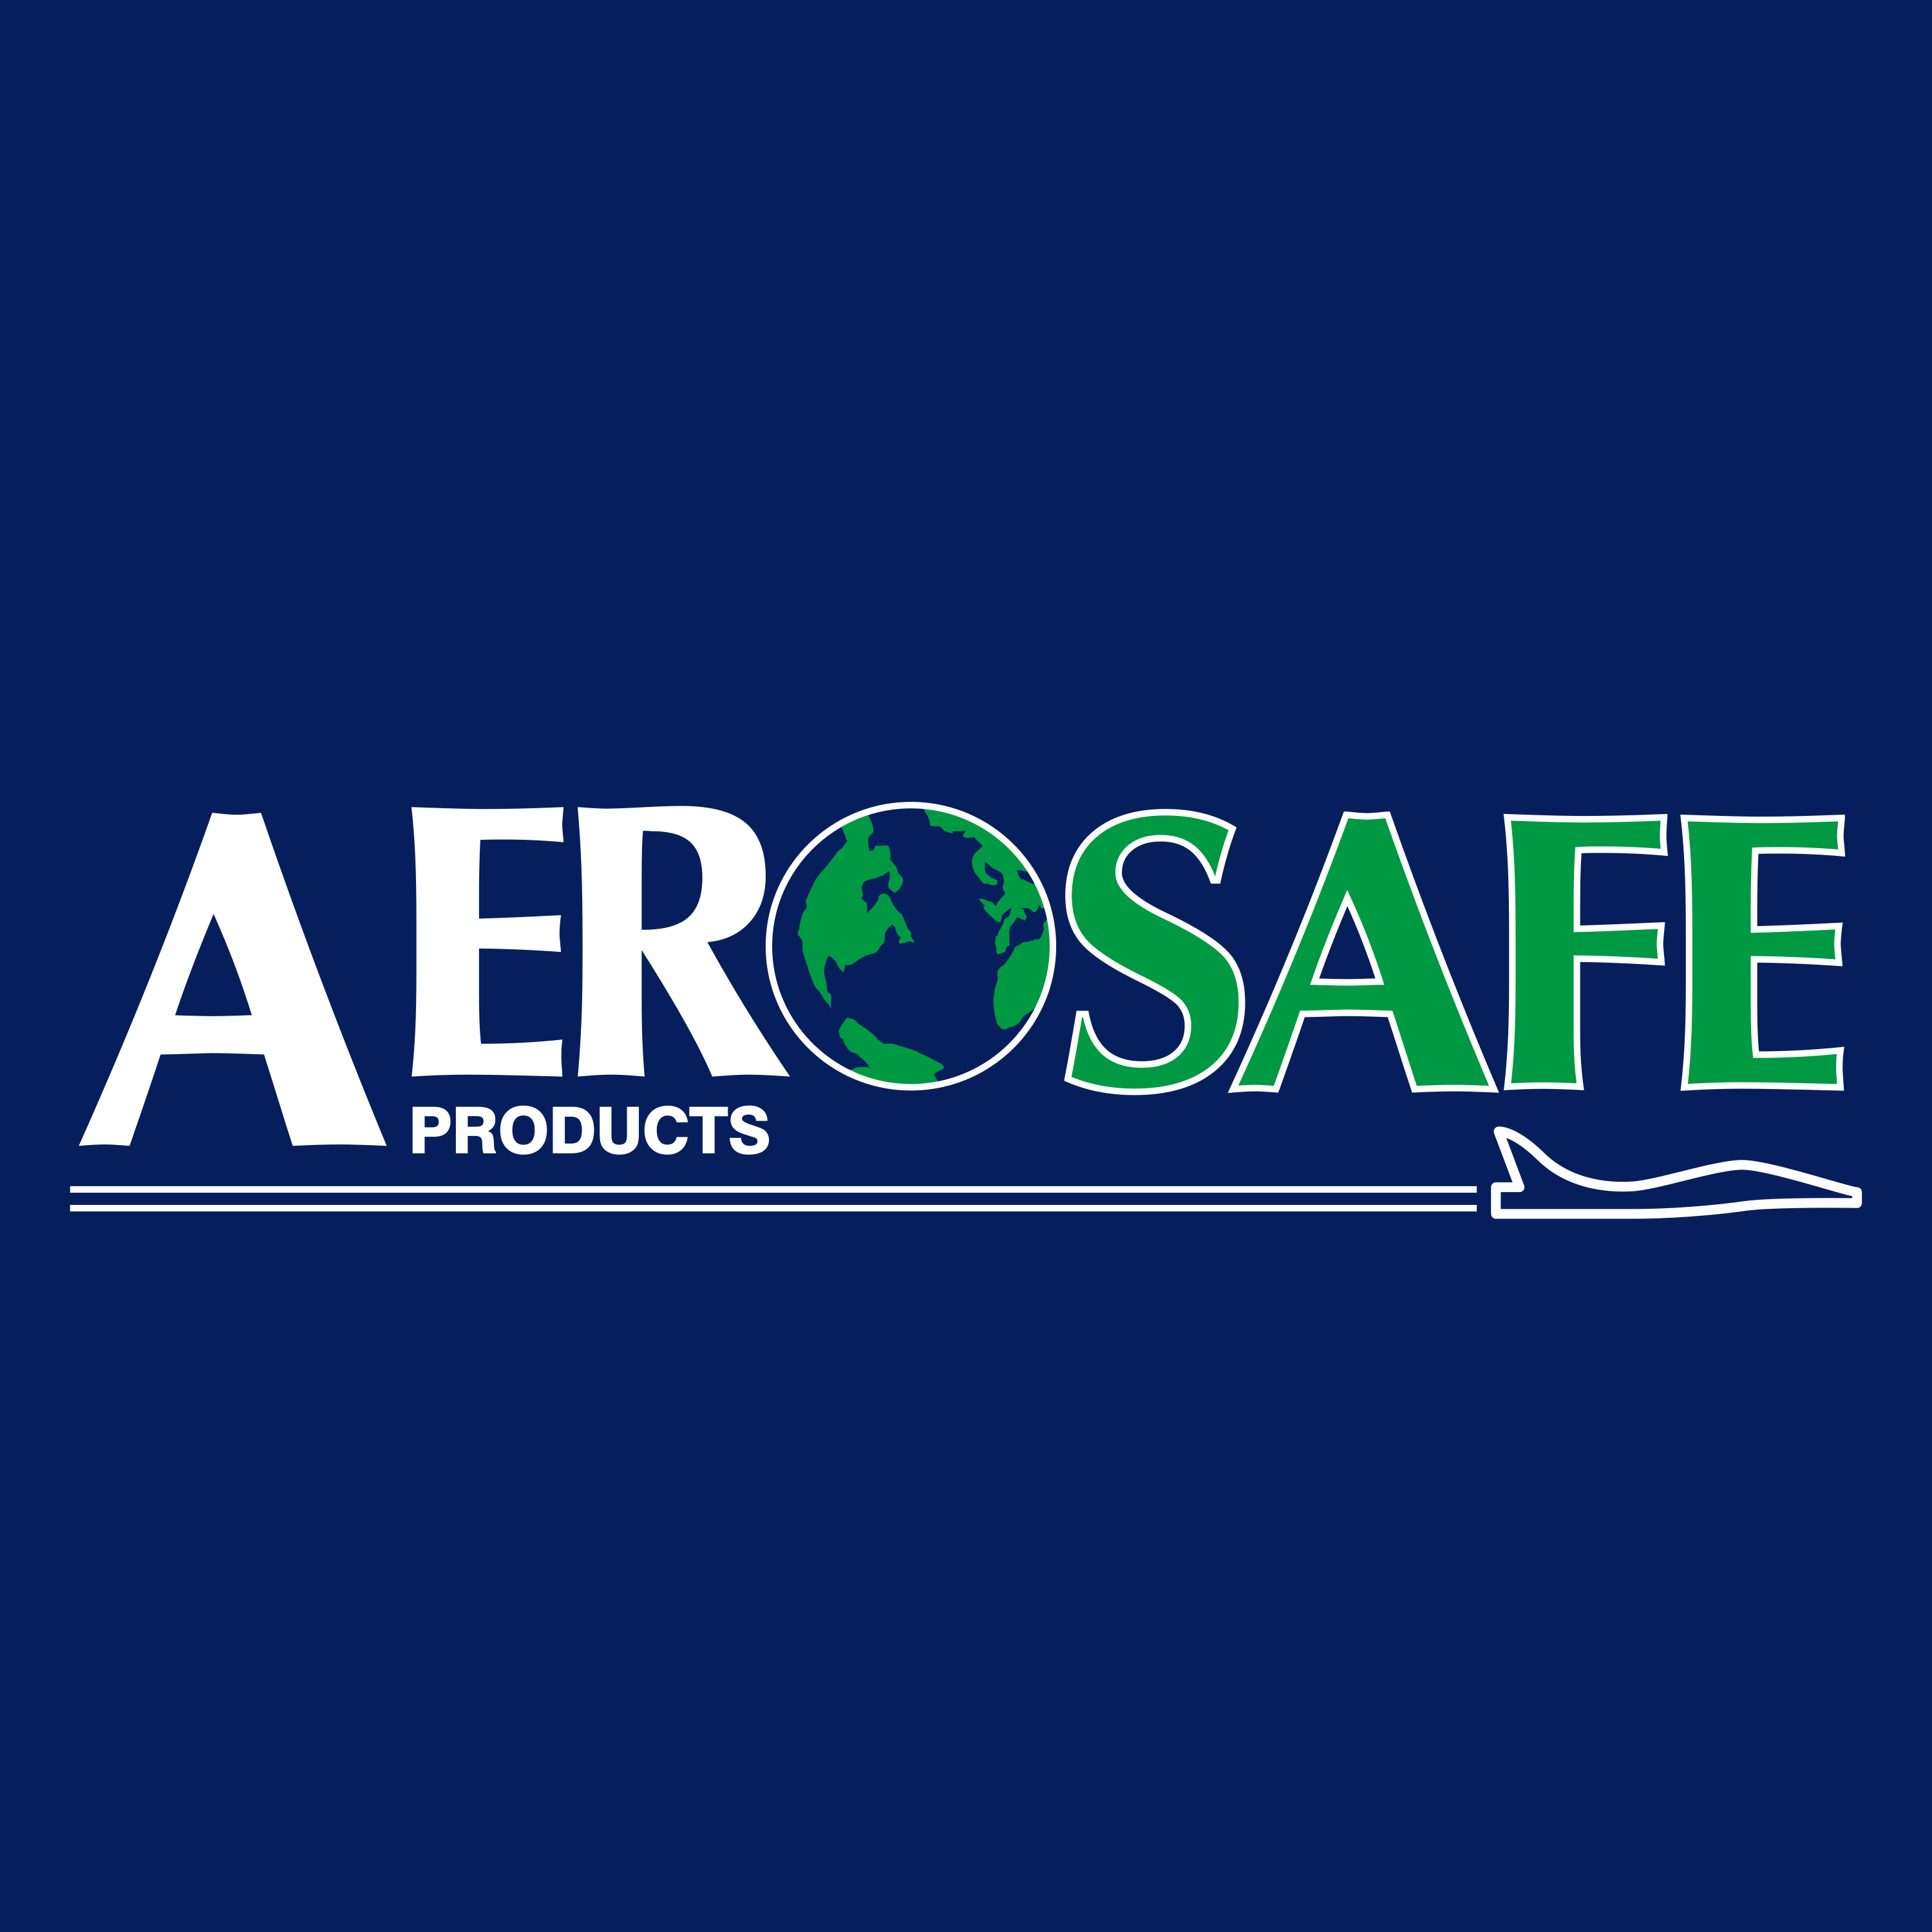 AeroSafe Products